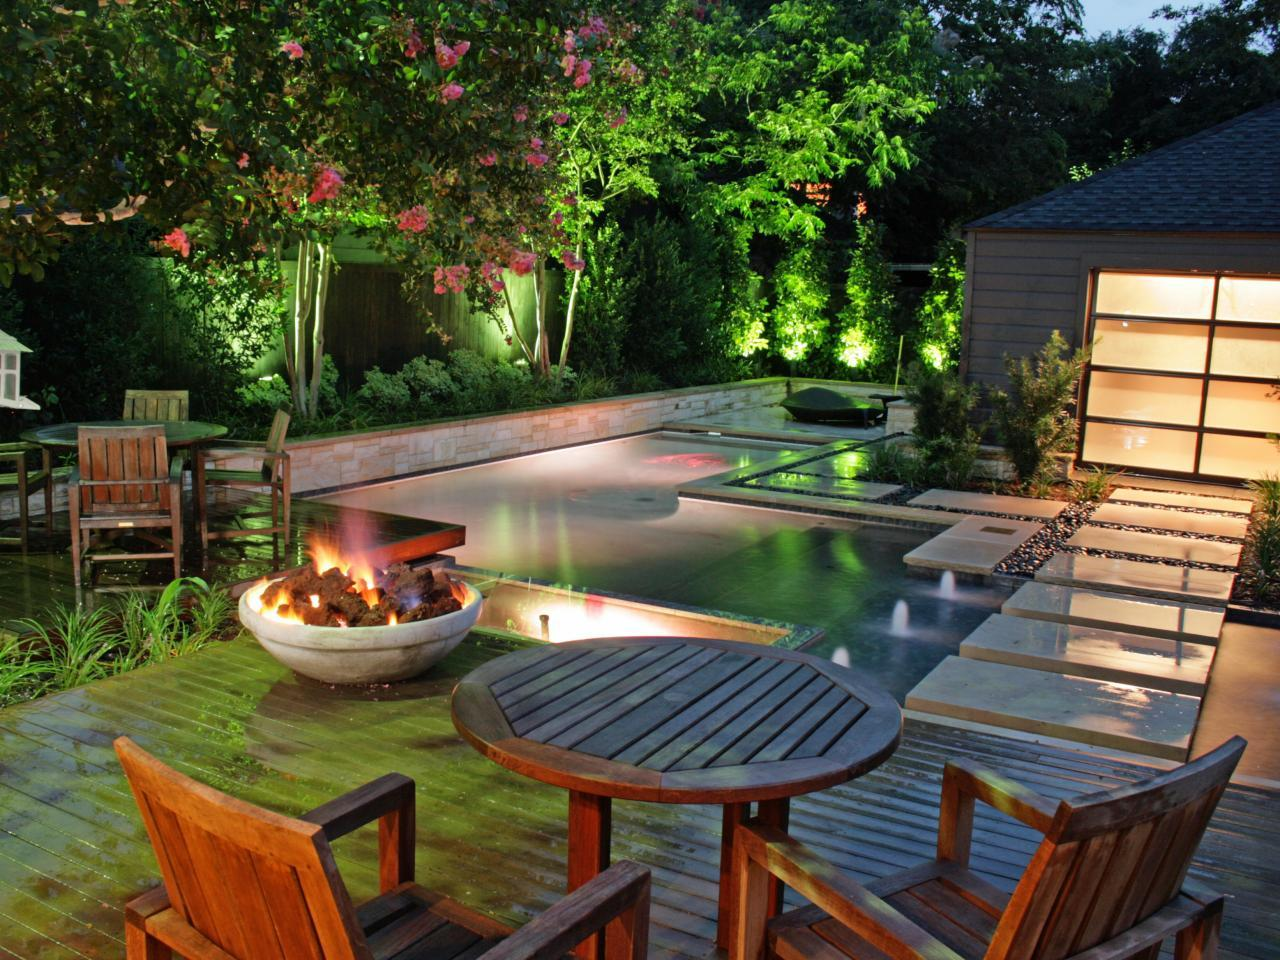 Turn your Backyard into Beautiful Lounge Place With These ... on Amazing Backyard Ideas id=51004